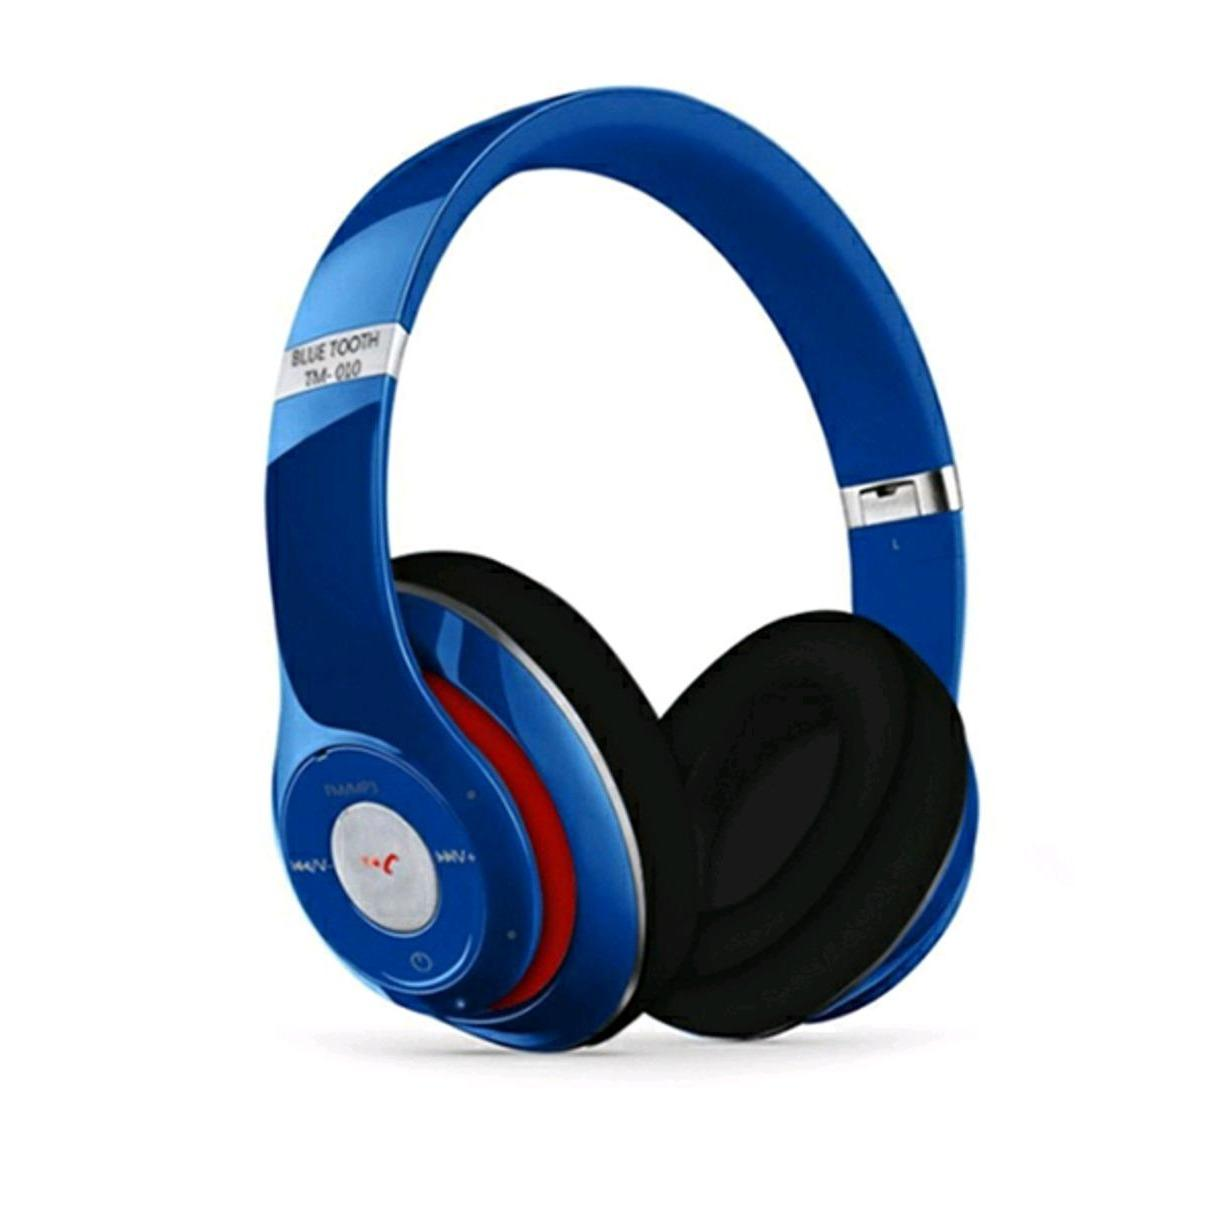 Harga Jbl Tm 010S Headphone Stereo Bluetooth Jbl Terbaik